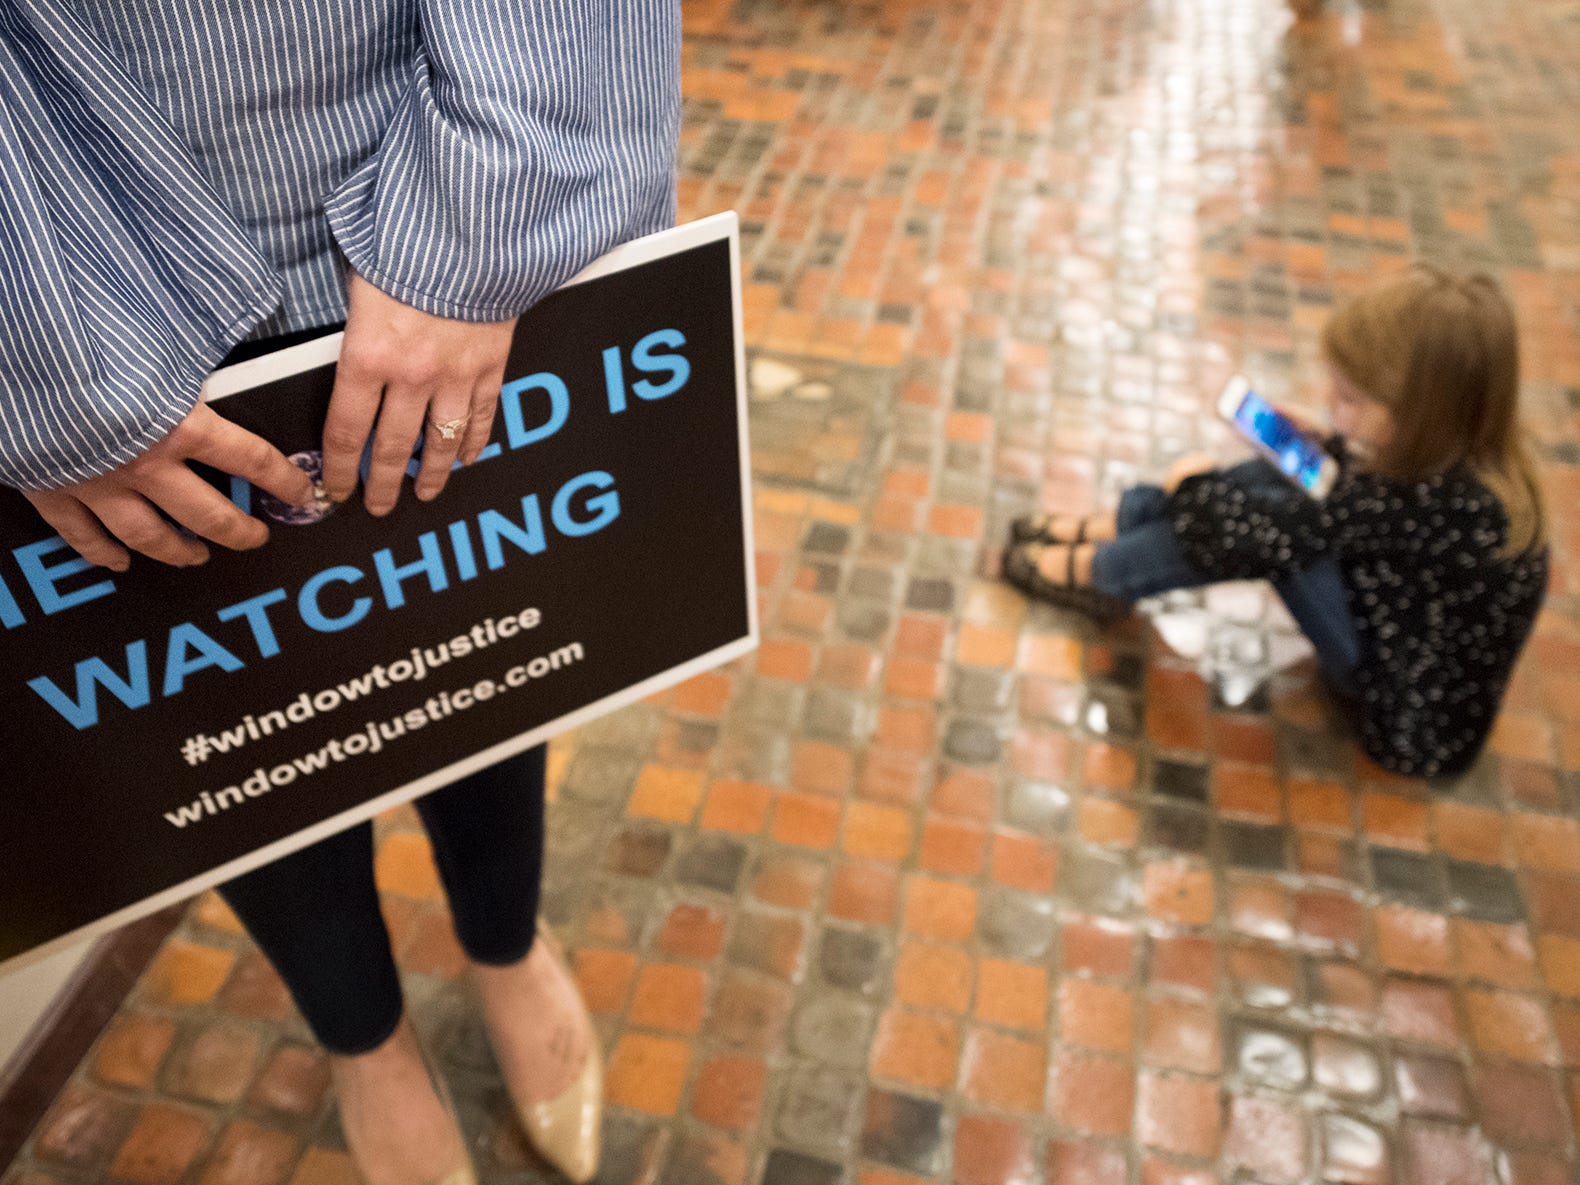 Adrienne Doolan, left, holds a sign while her daughter Reagan sits close by during the demonstration for statute of limitations reform to the state's childhood sexual abuse laws at the state capitol in Harrisburg Monday October, 15, 2018.